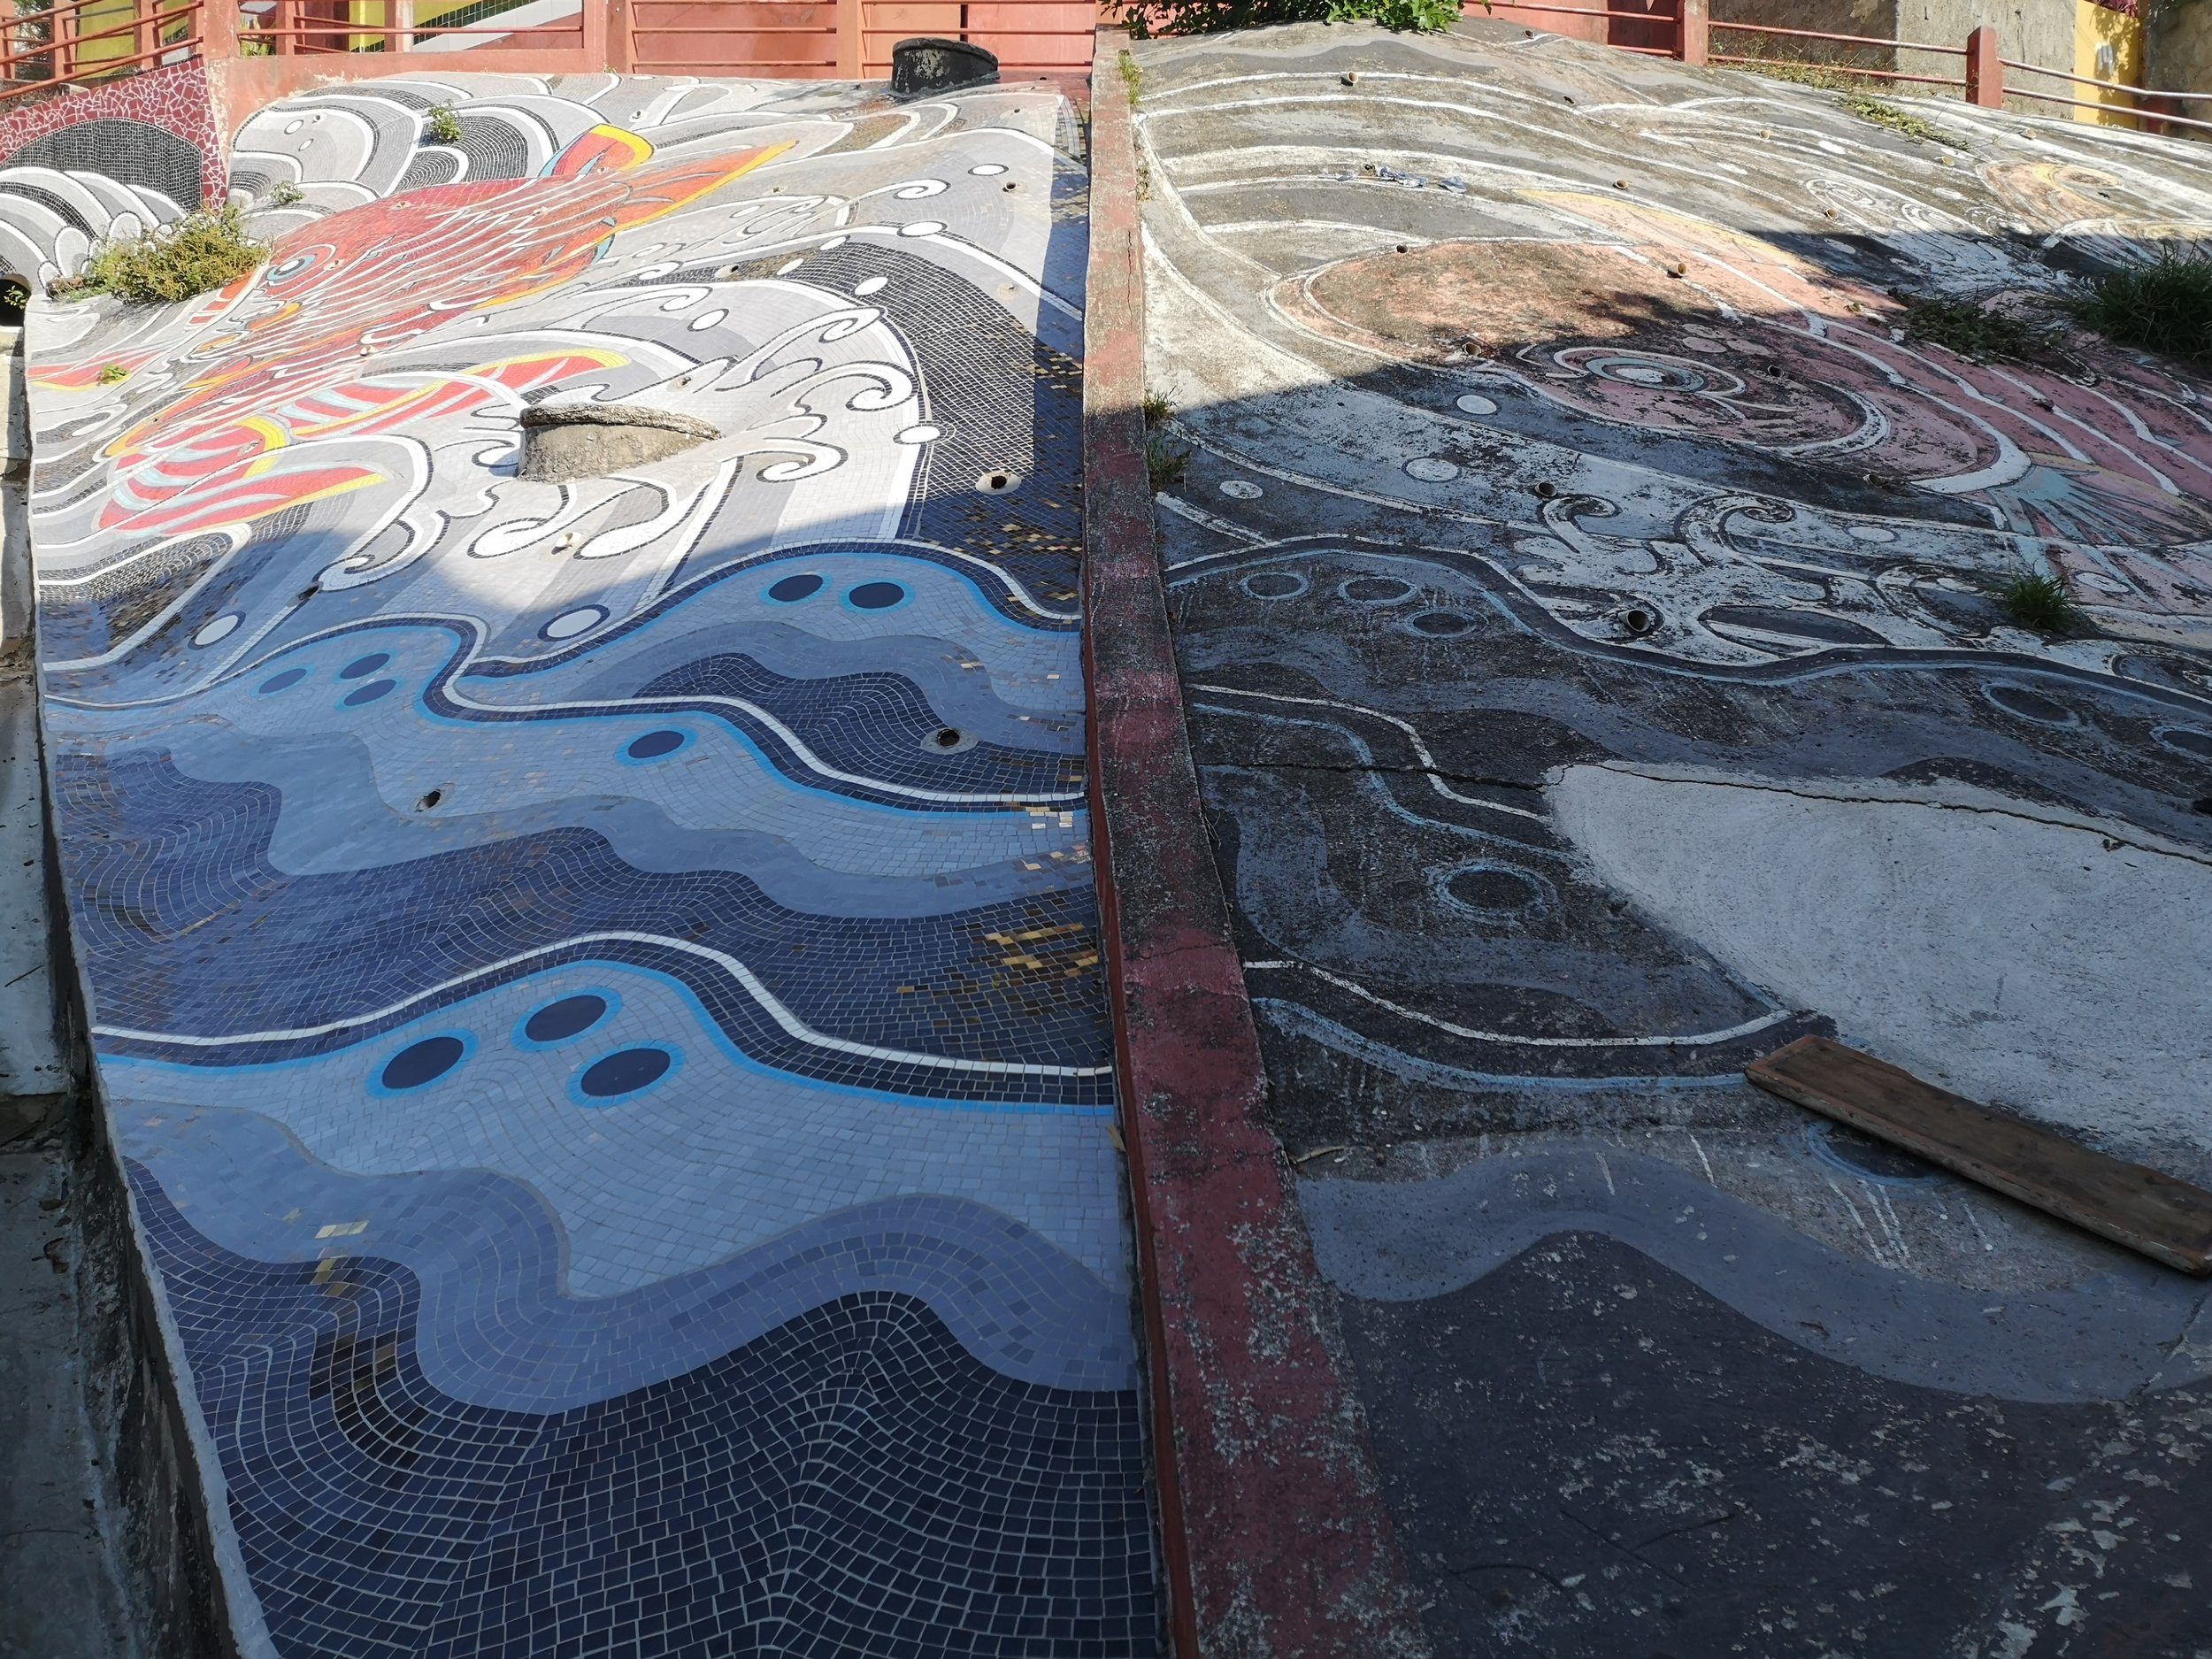 Old vs. New. On the right side, the ten-years-old painted koi carp. On the left side the renovated mosaic.